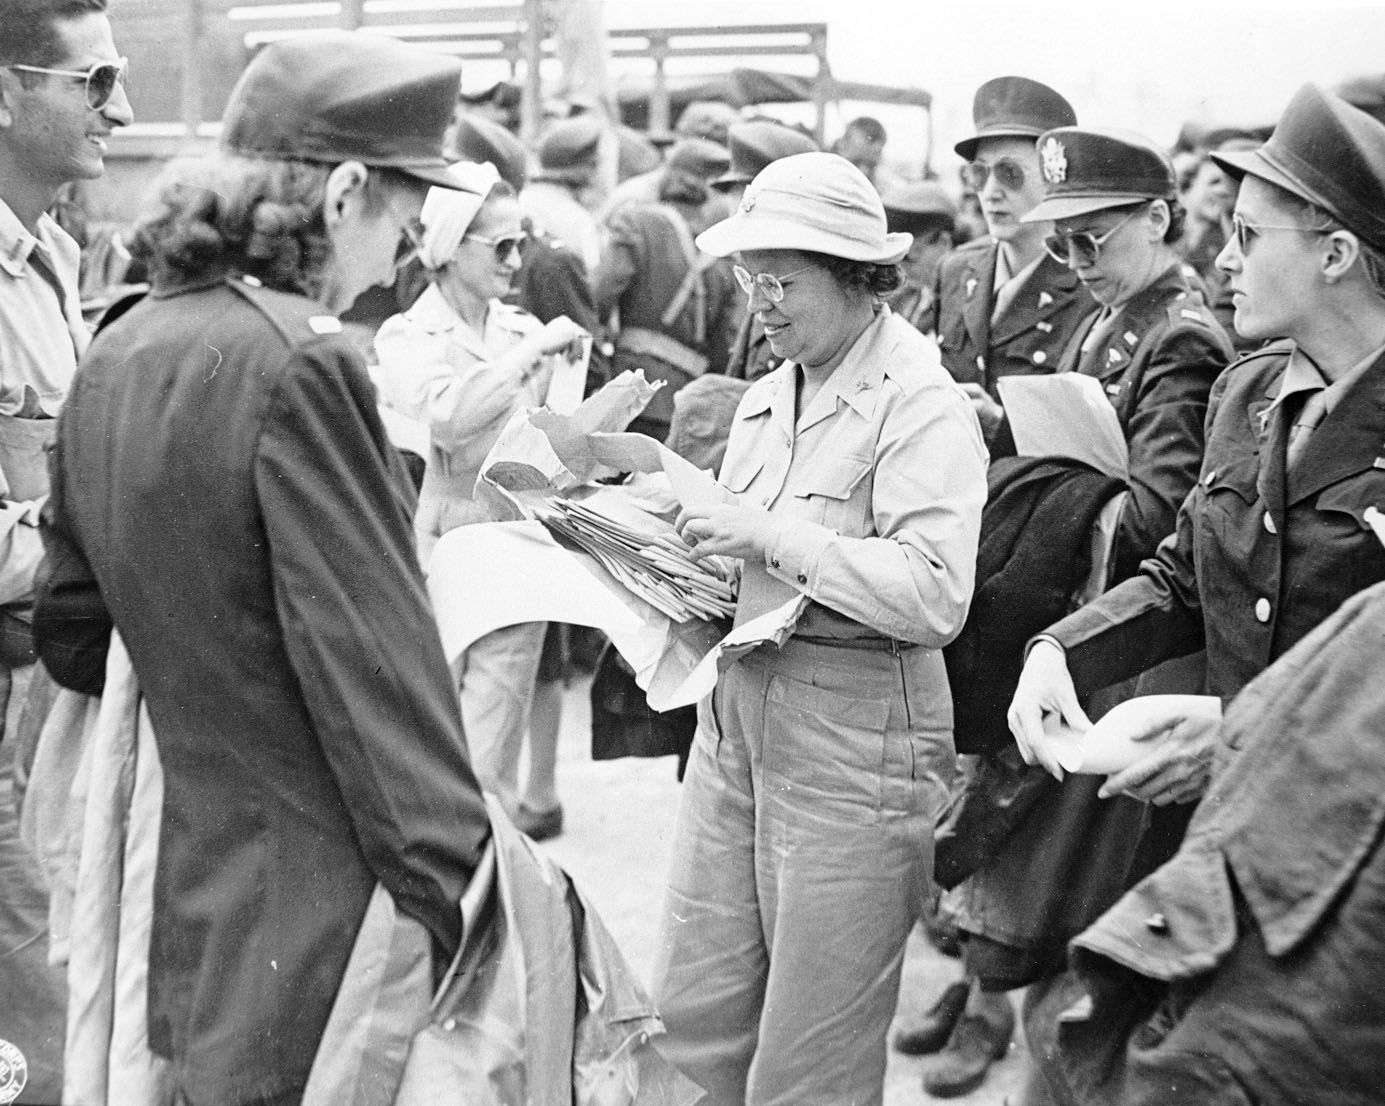 WW 2-Angels of Bataan-Captured Nurses Liberated from Japanese 1945 Photo